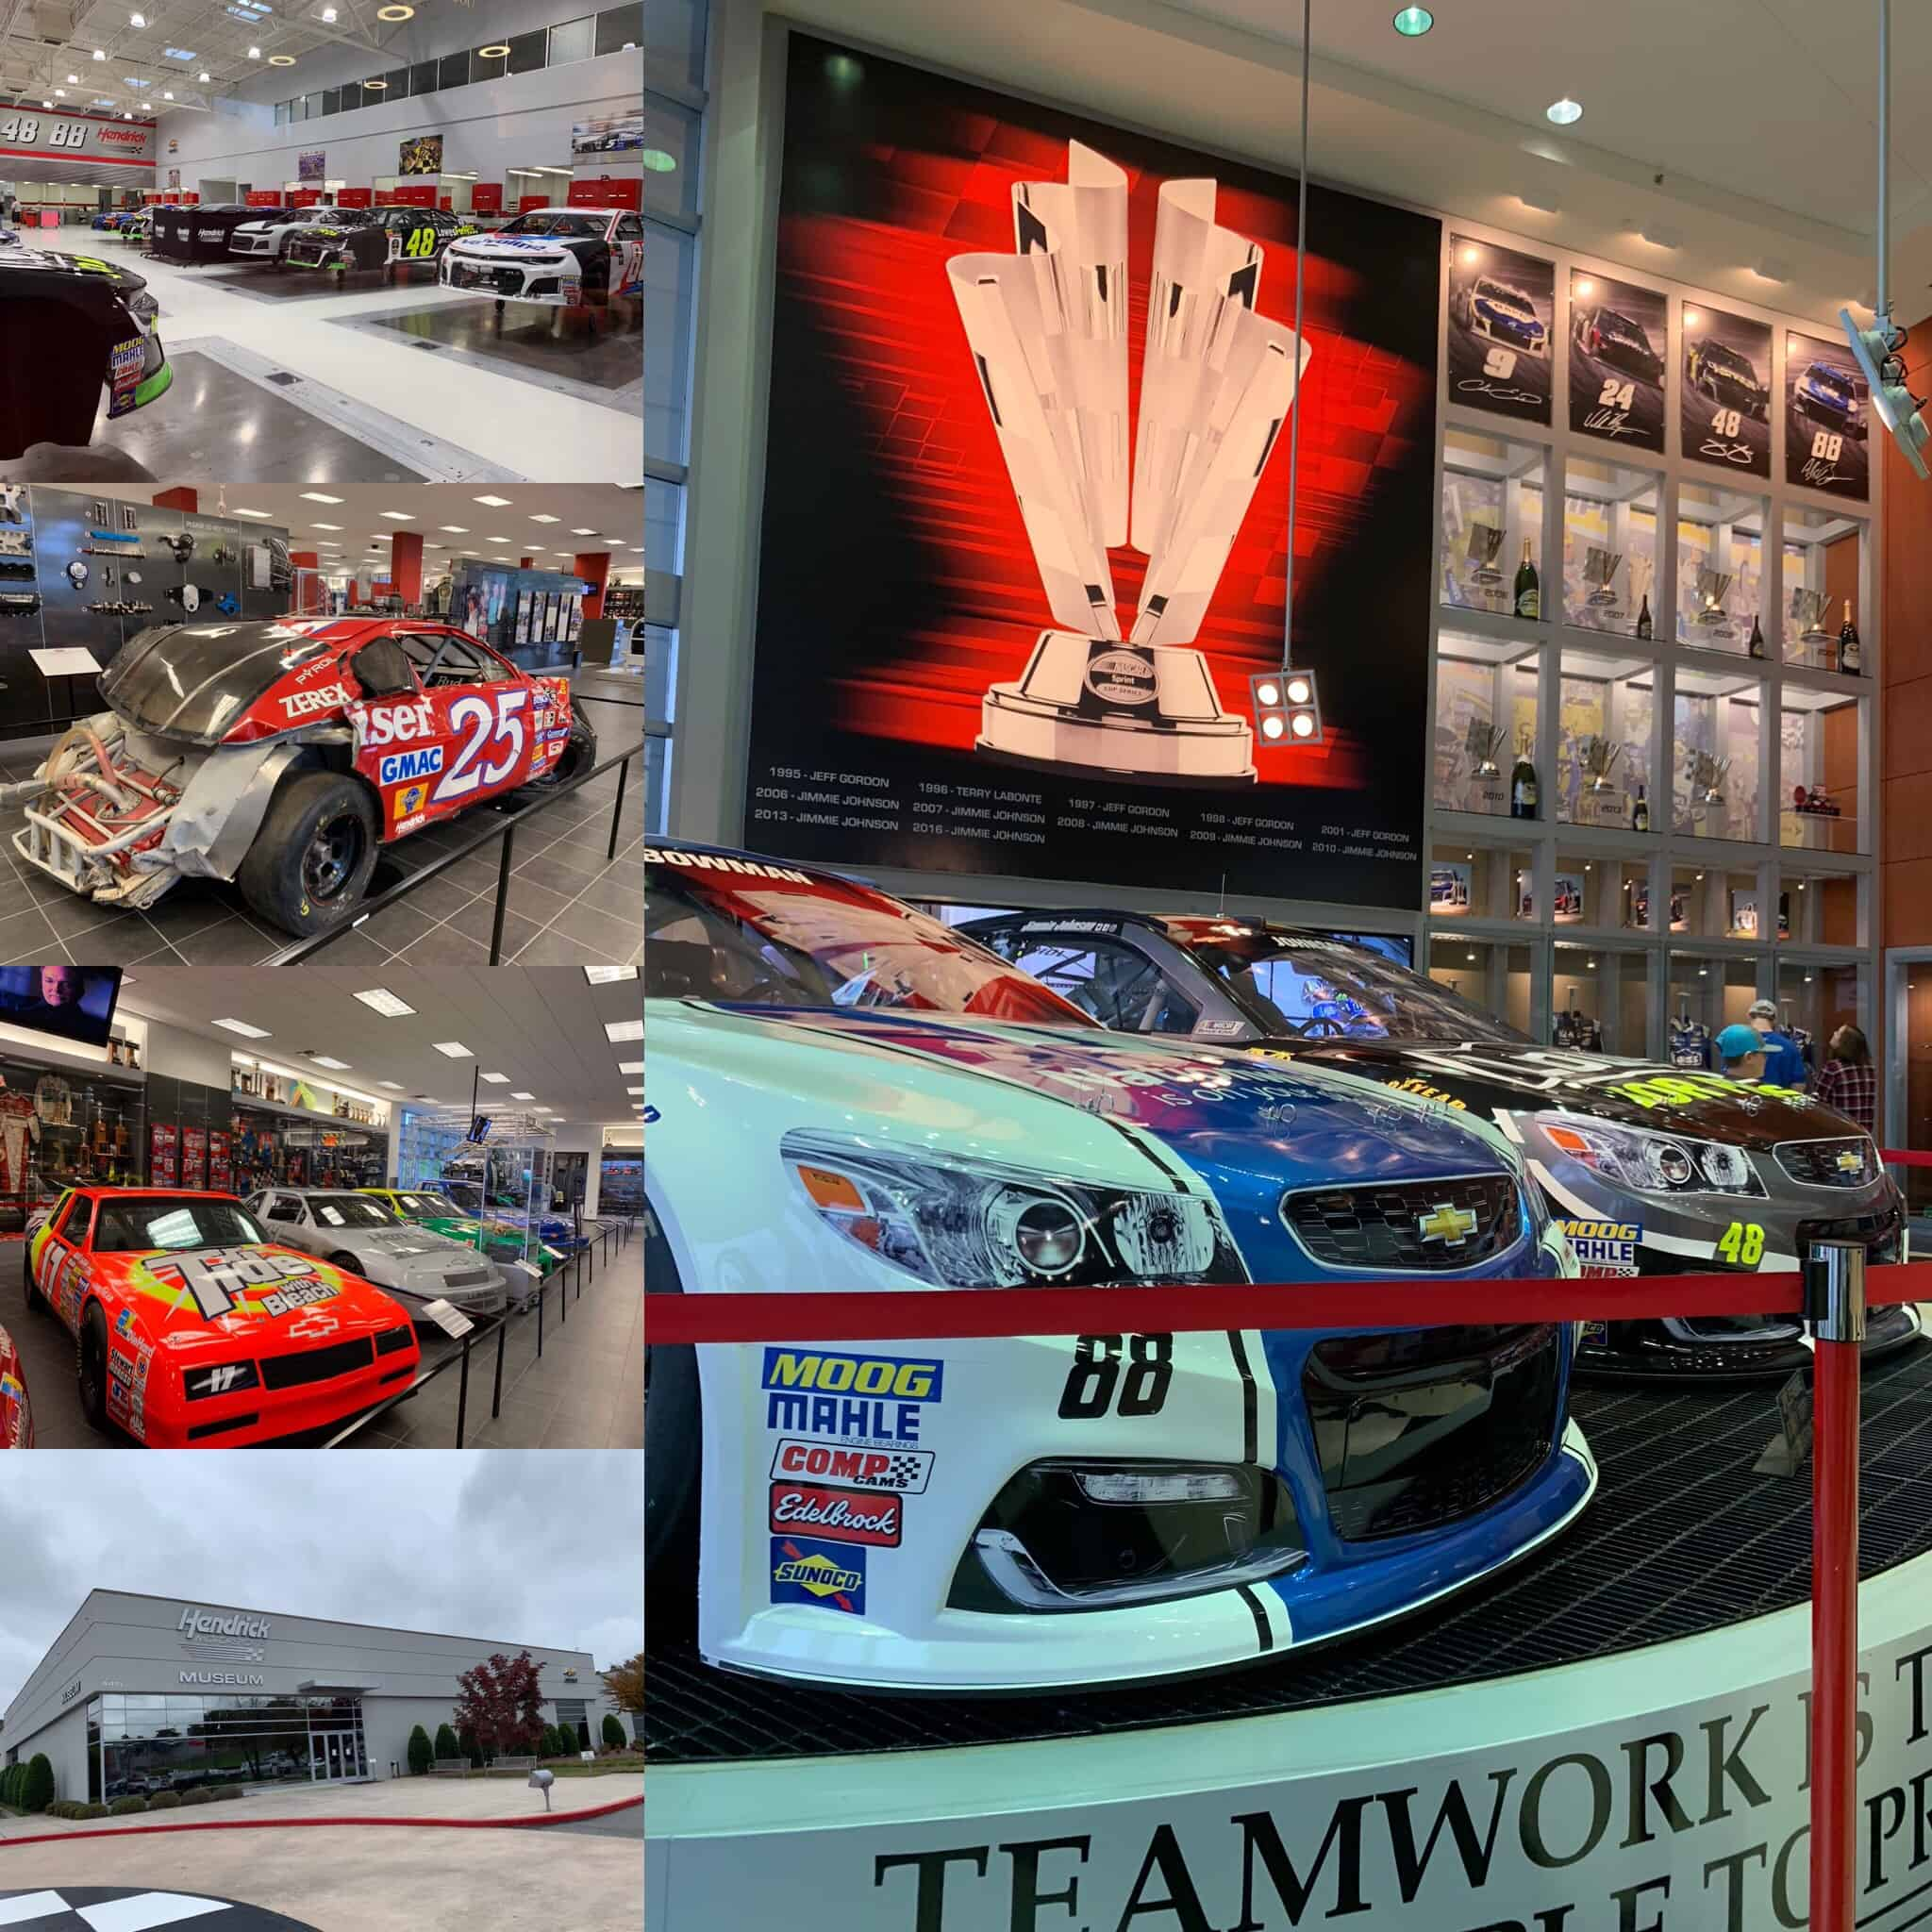 The best things to do in Concord NC in a weekend featured by top travel blog, The Common Traveler: collage of photos with race cars from Hendrick Motor Sports in Concord, NC